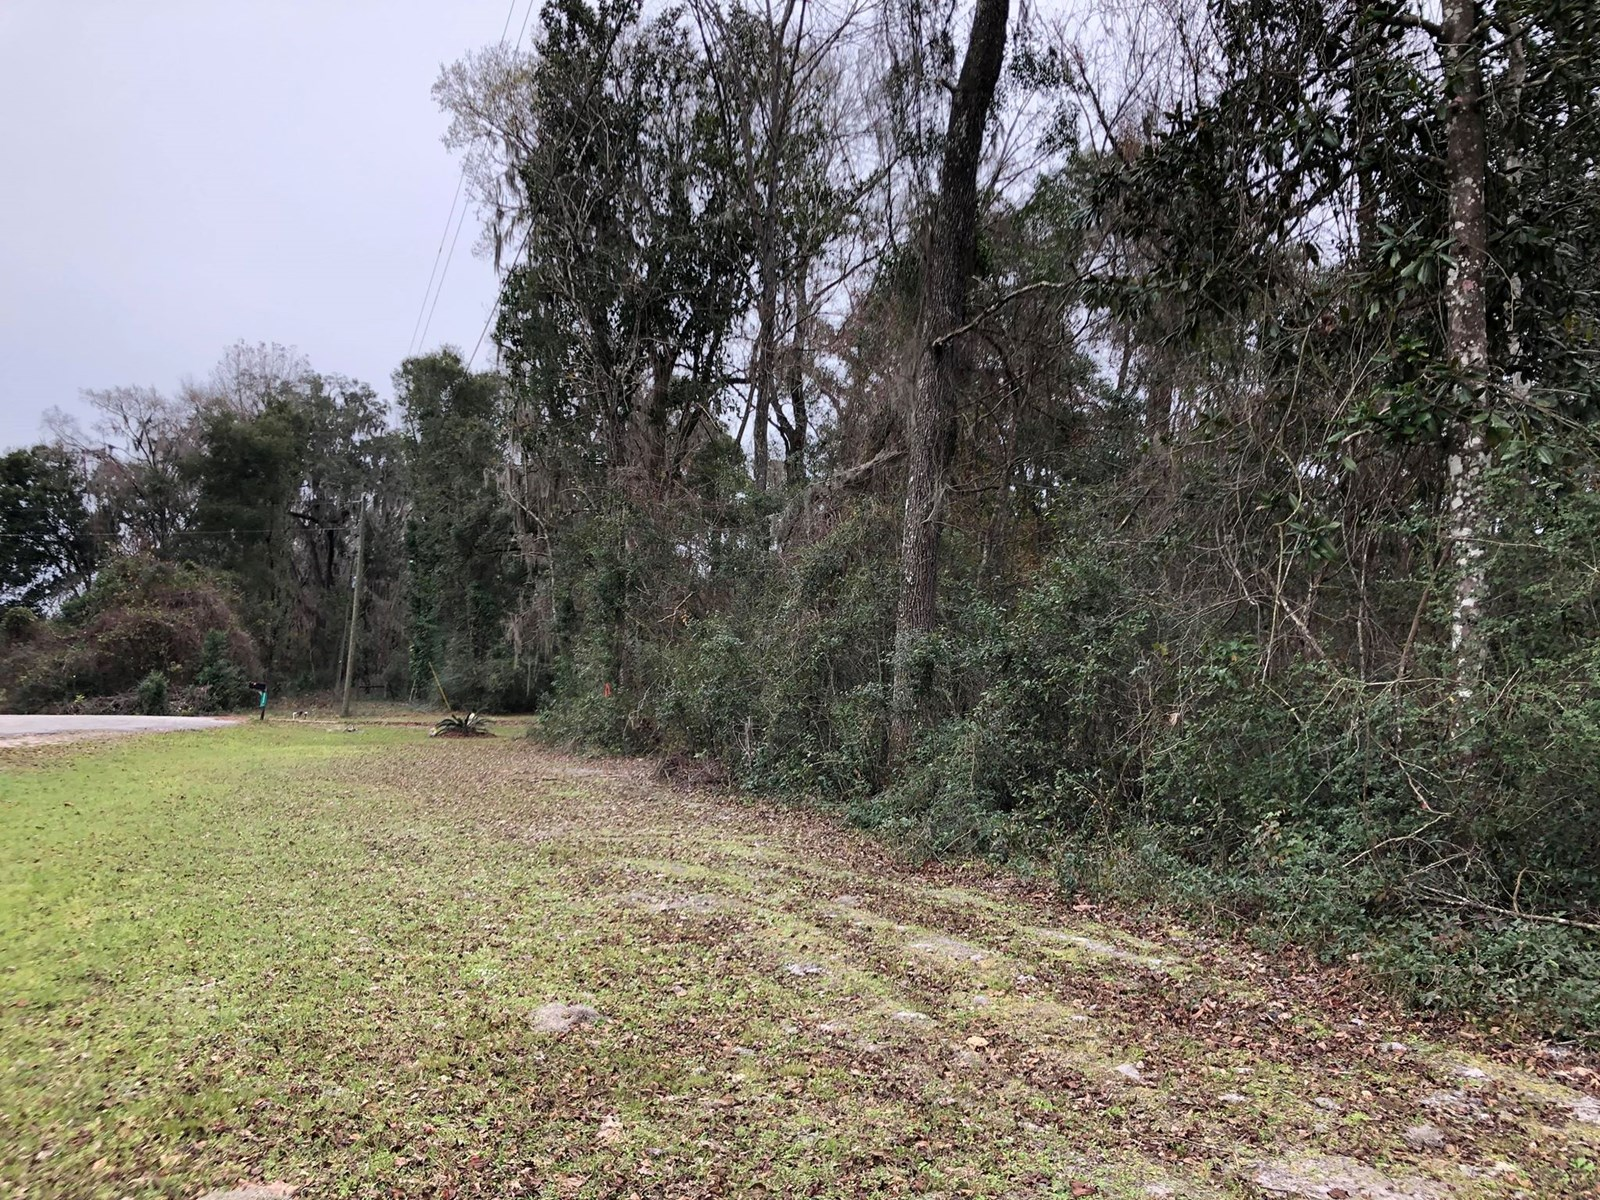 1 ACRE LOT IN LEVY COUNTY, FL FOR SALE!